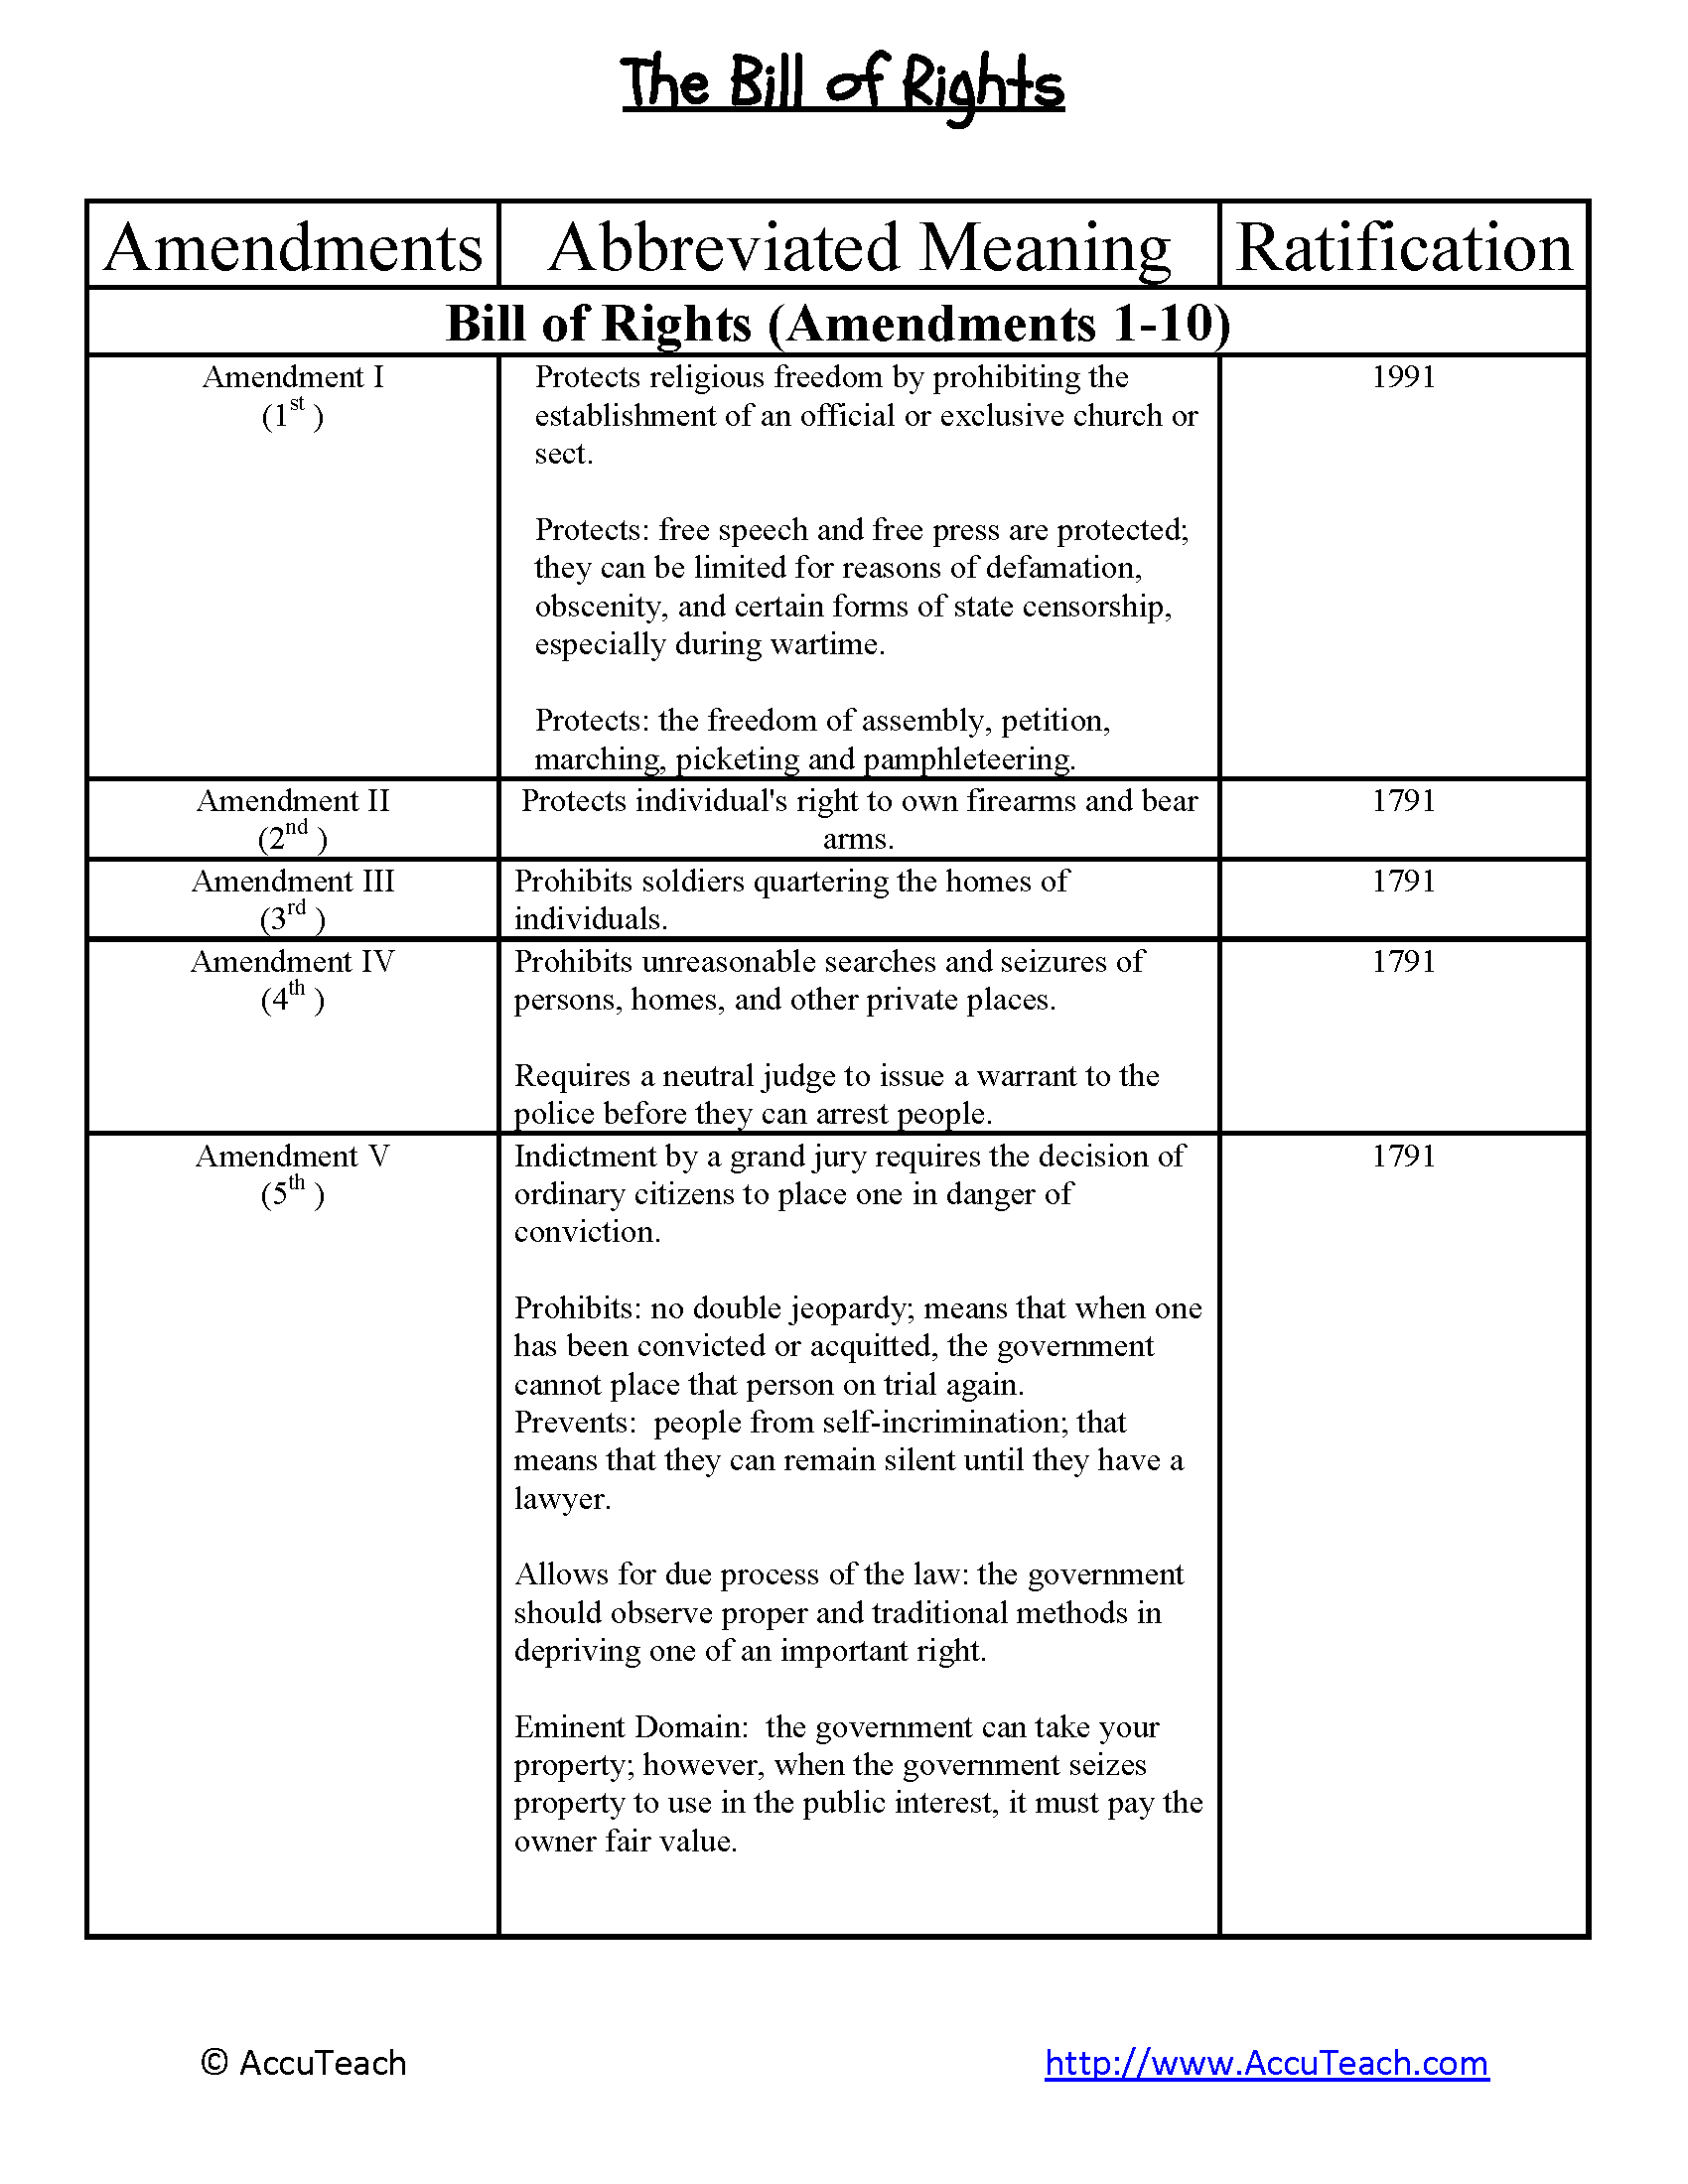 Outlining The Constitution Worksheet Answers